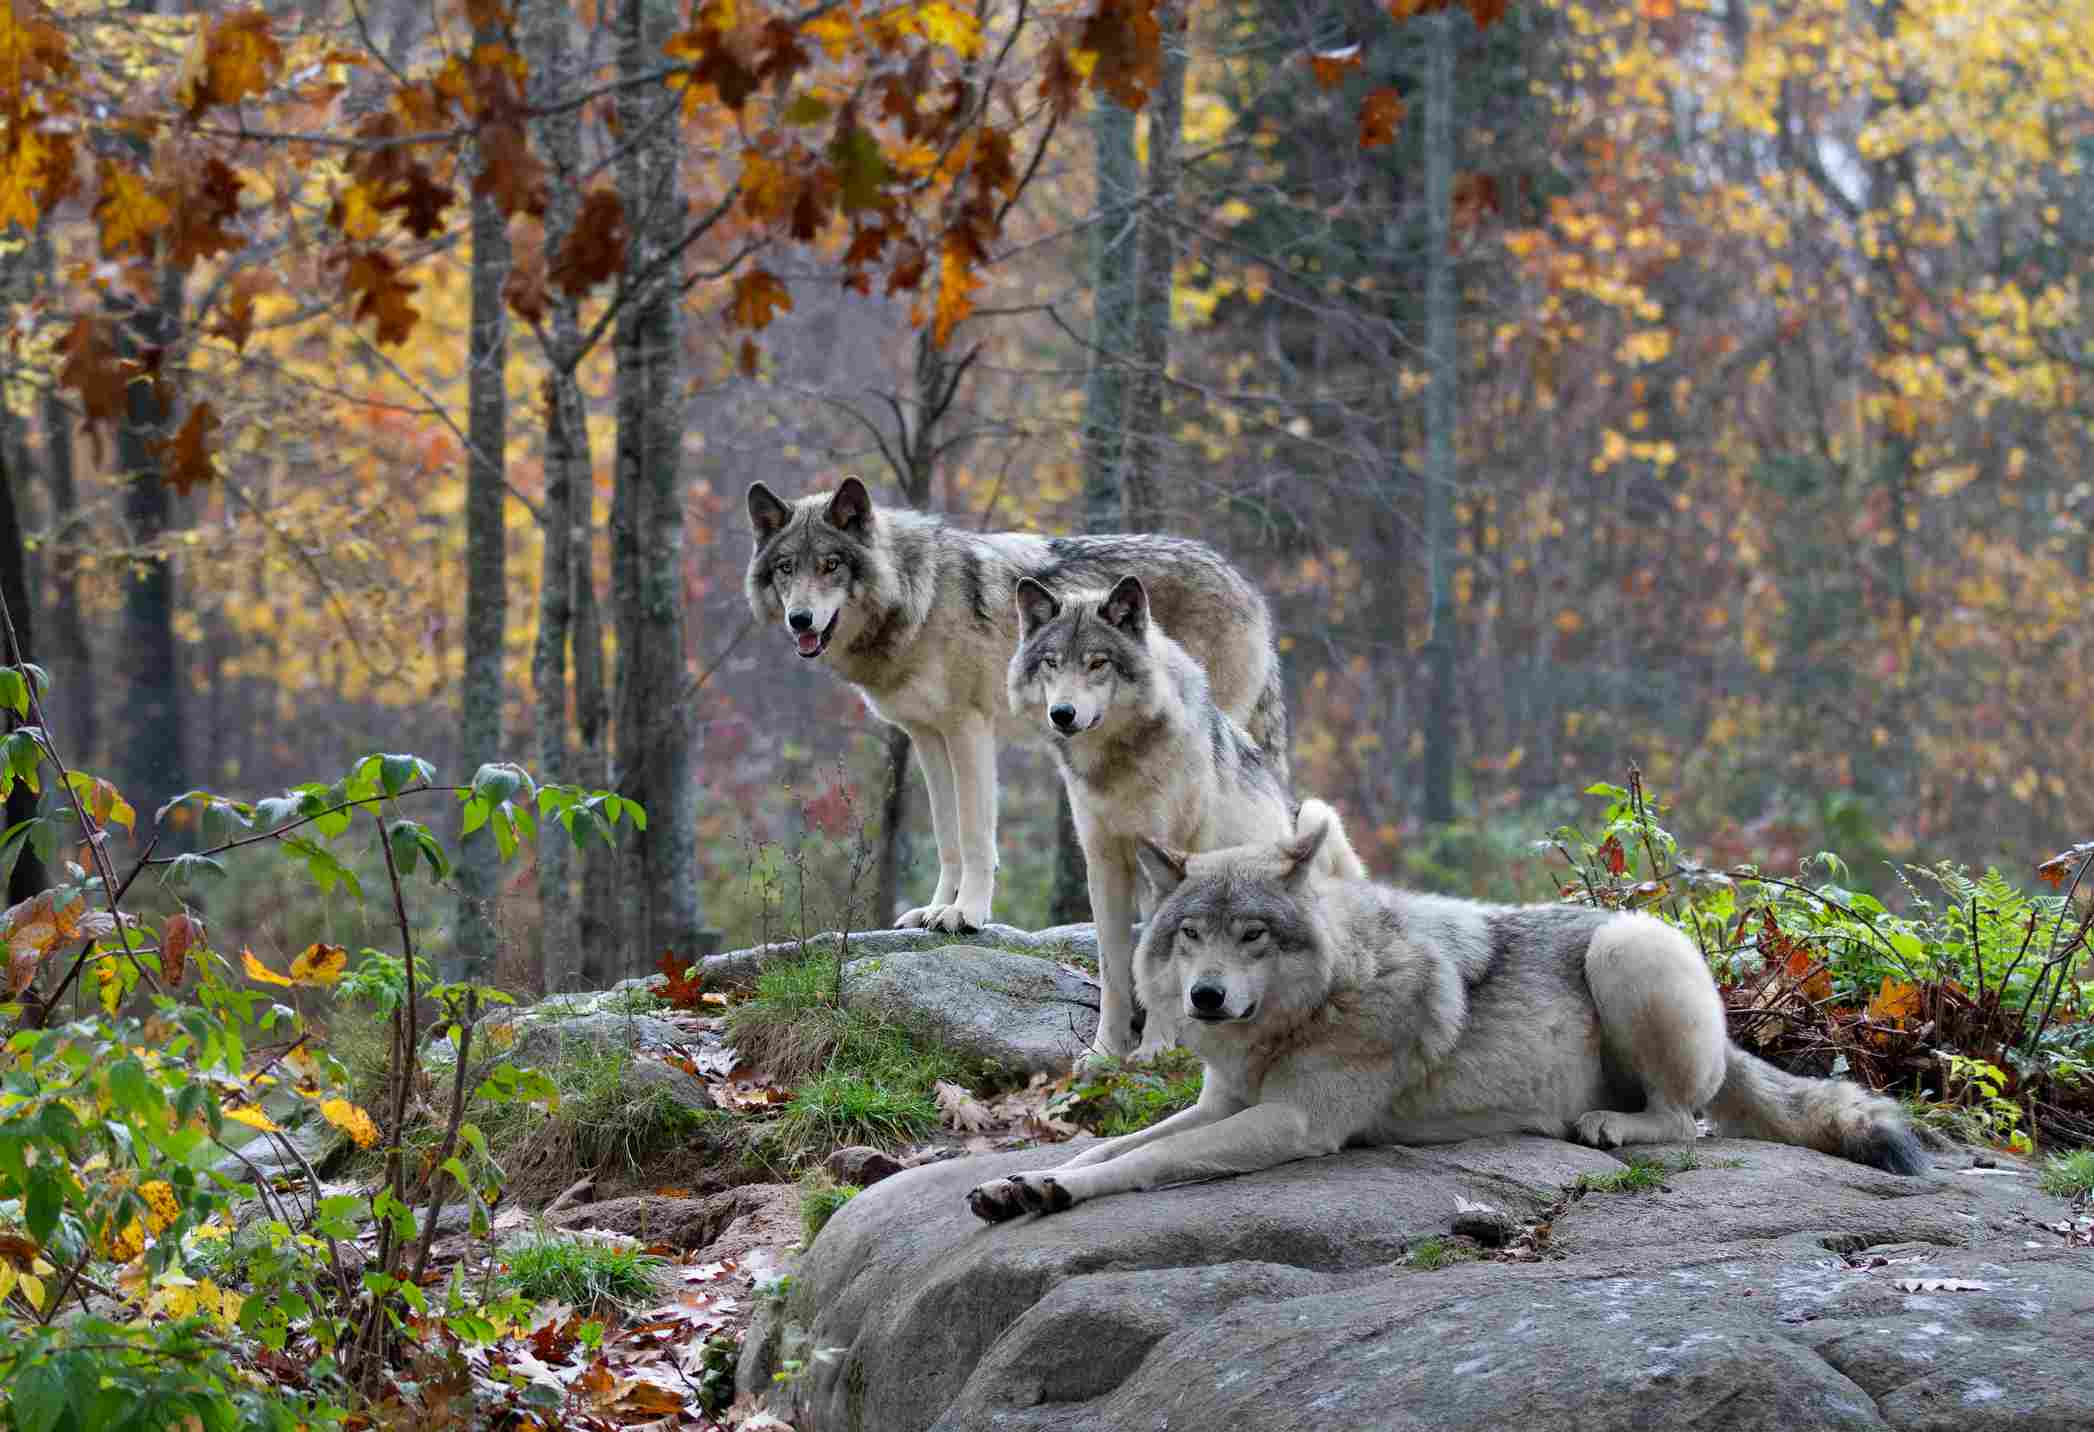 Three Timber wolves in Autumn rain